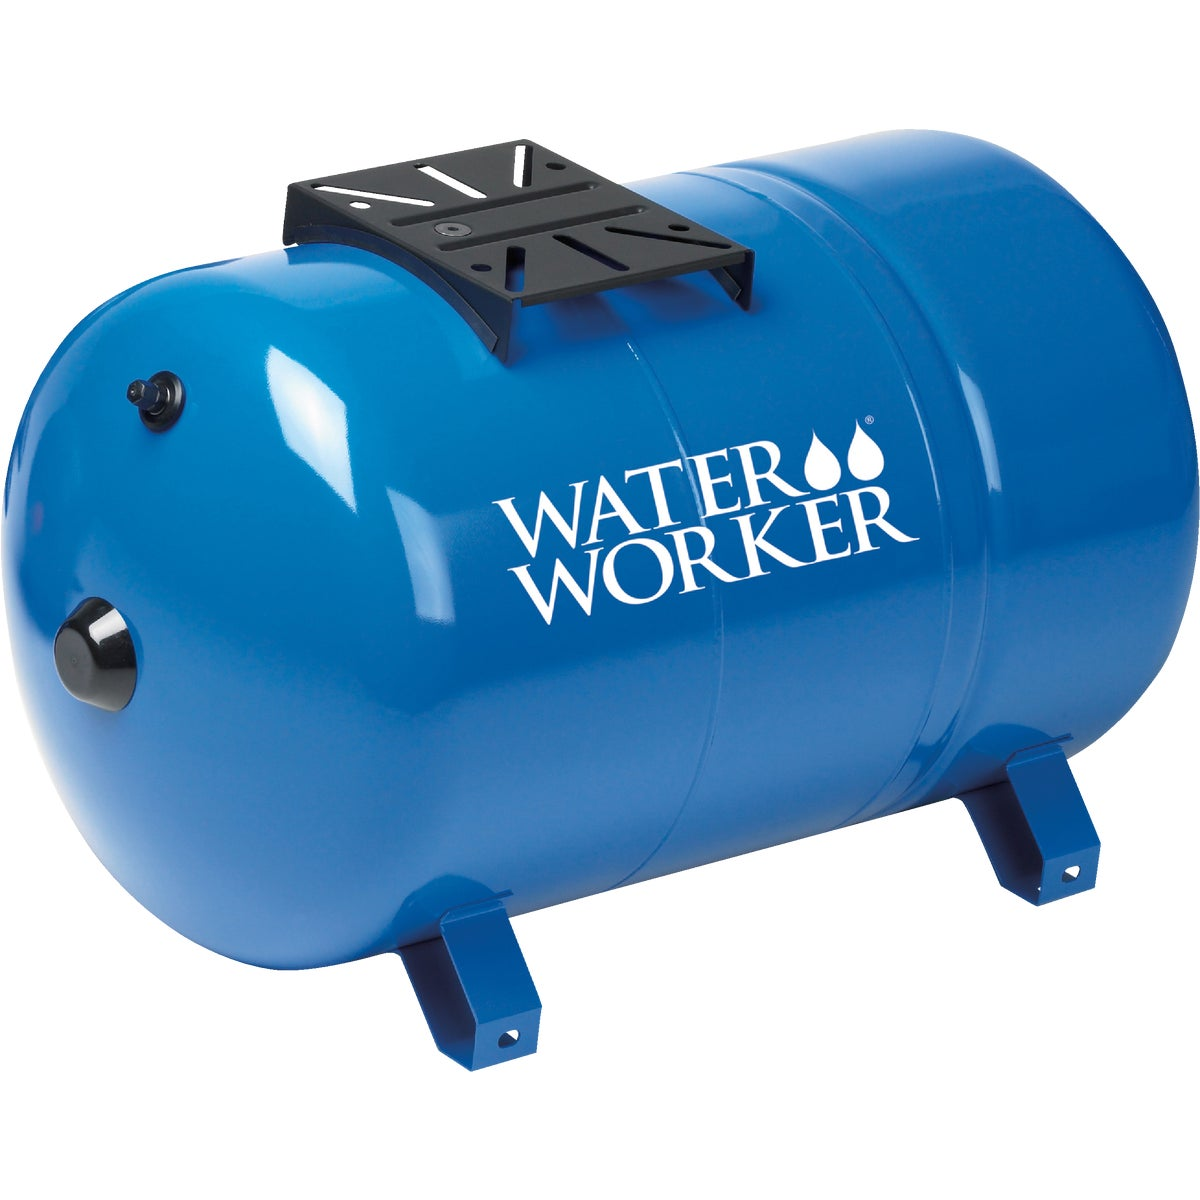 14GAL HORZNTAL WELL TANK - HT-14HB by Water Worker